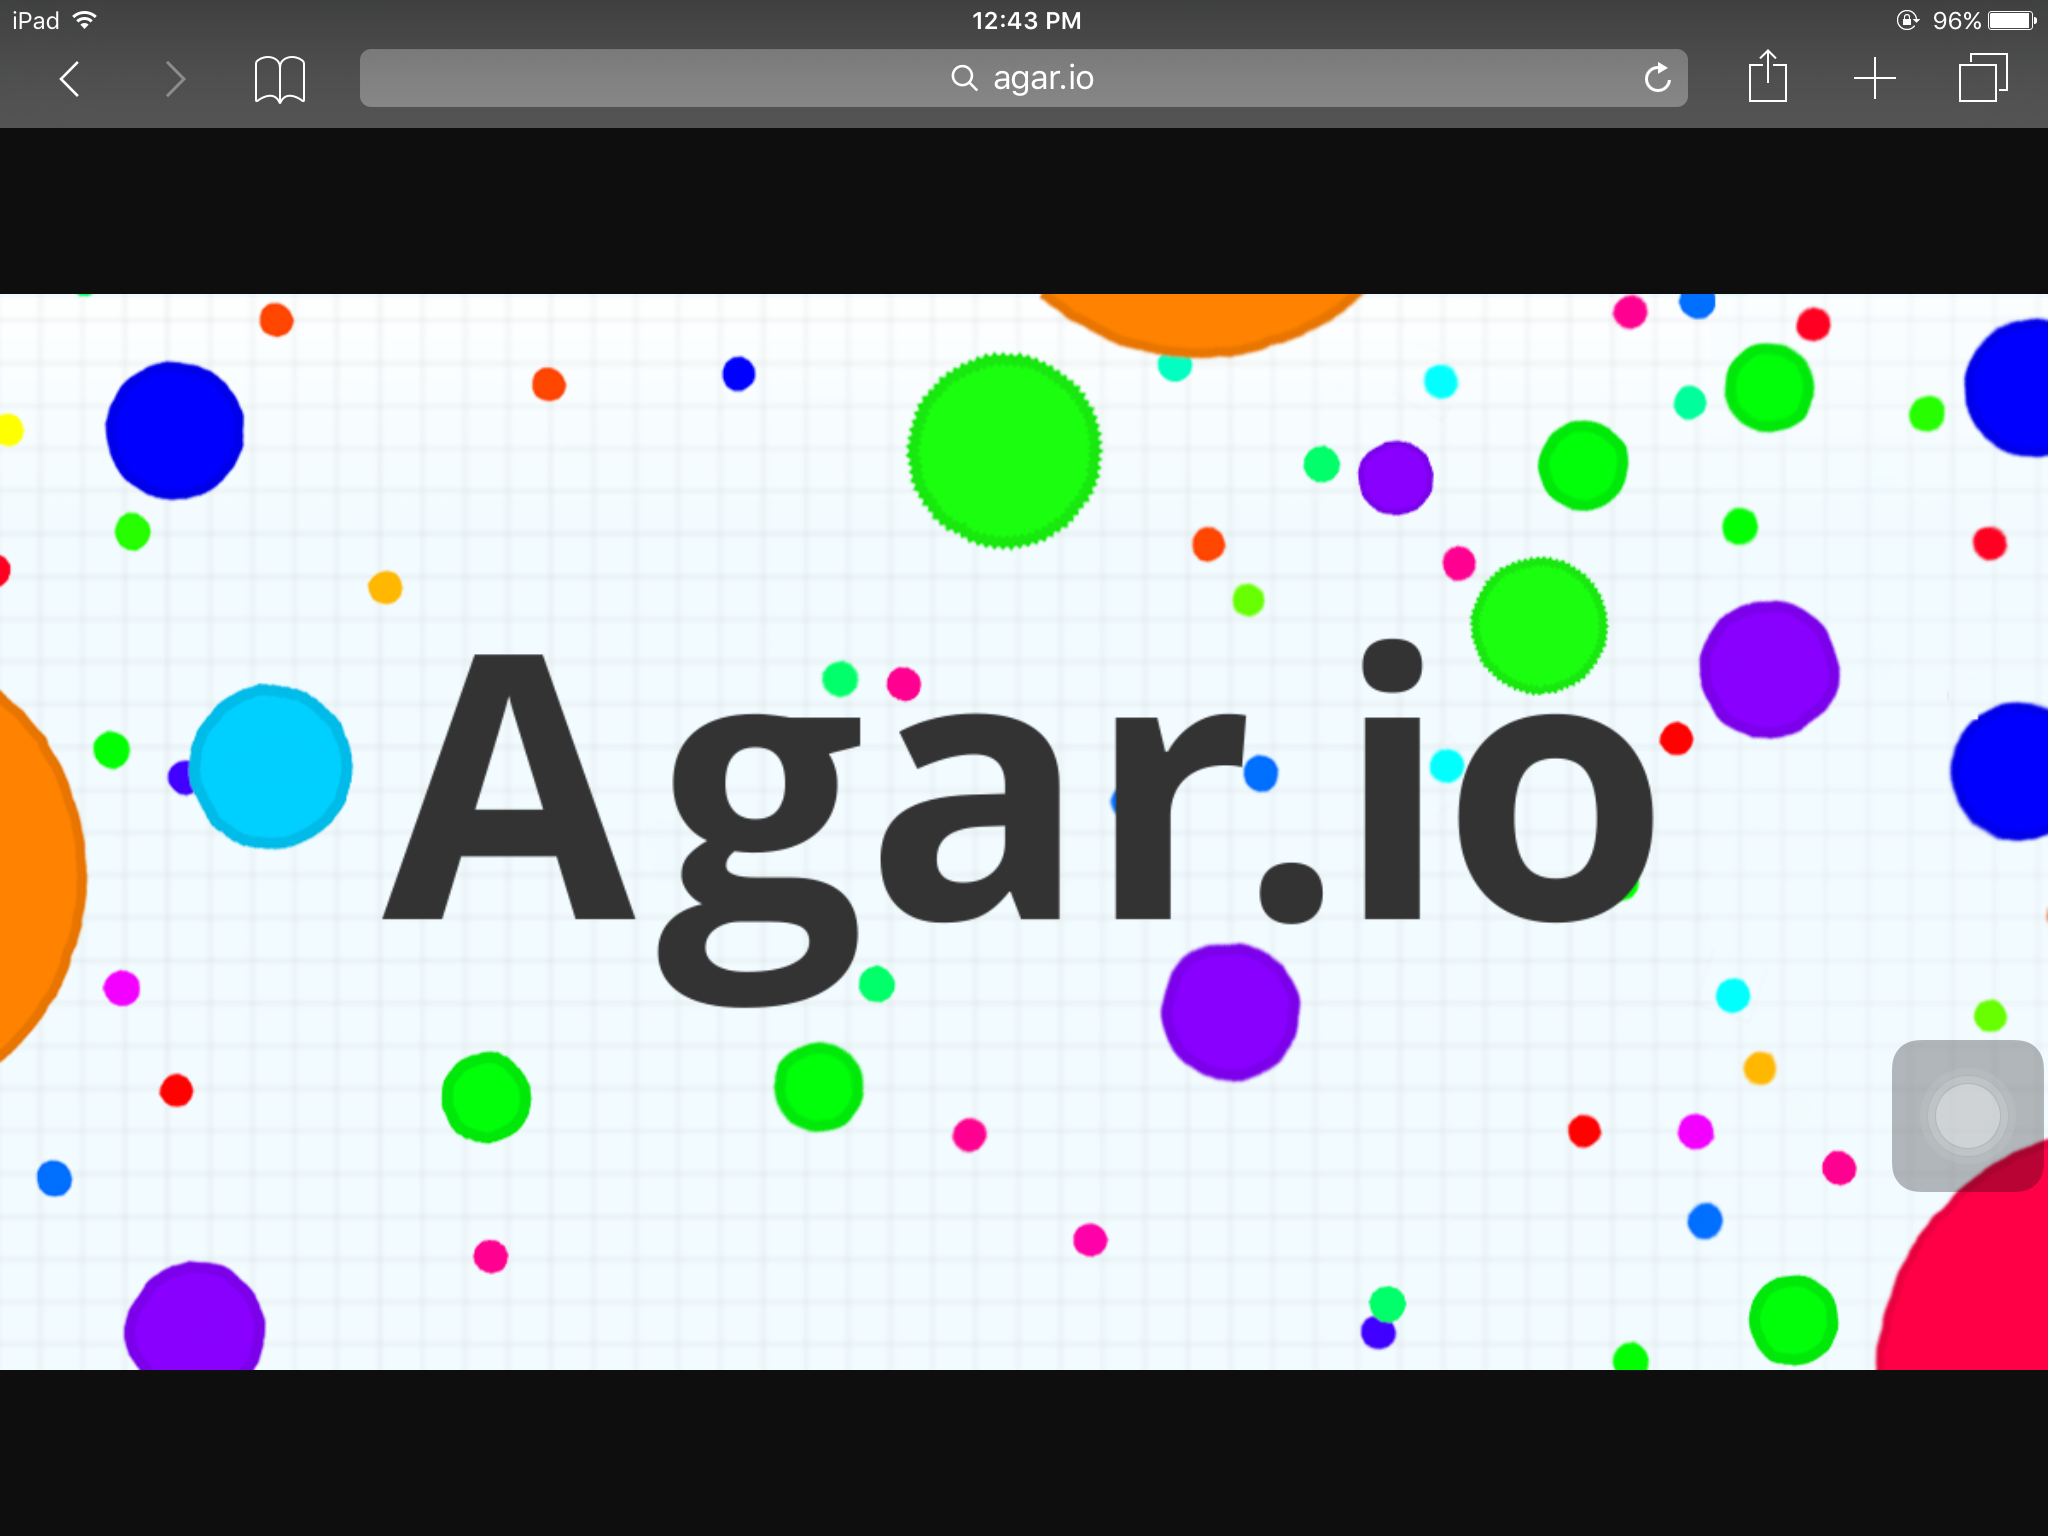 How big are you in agar.io?